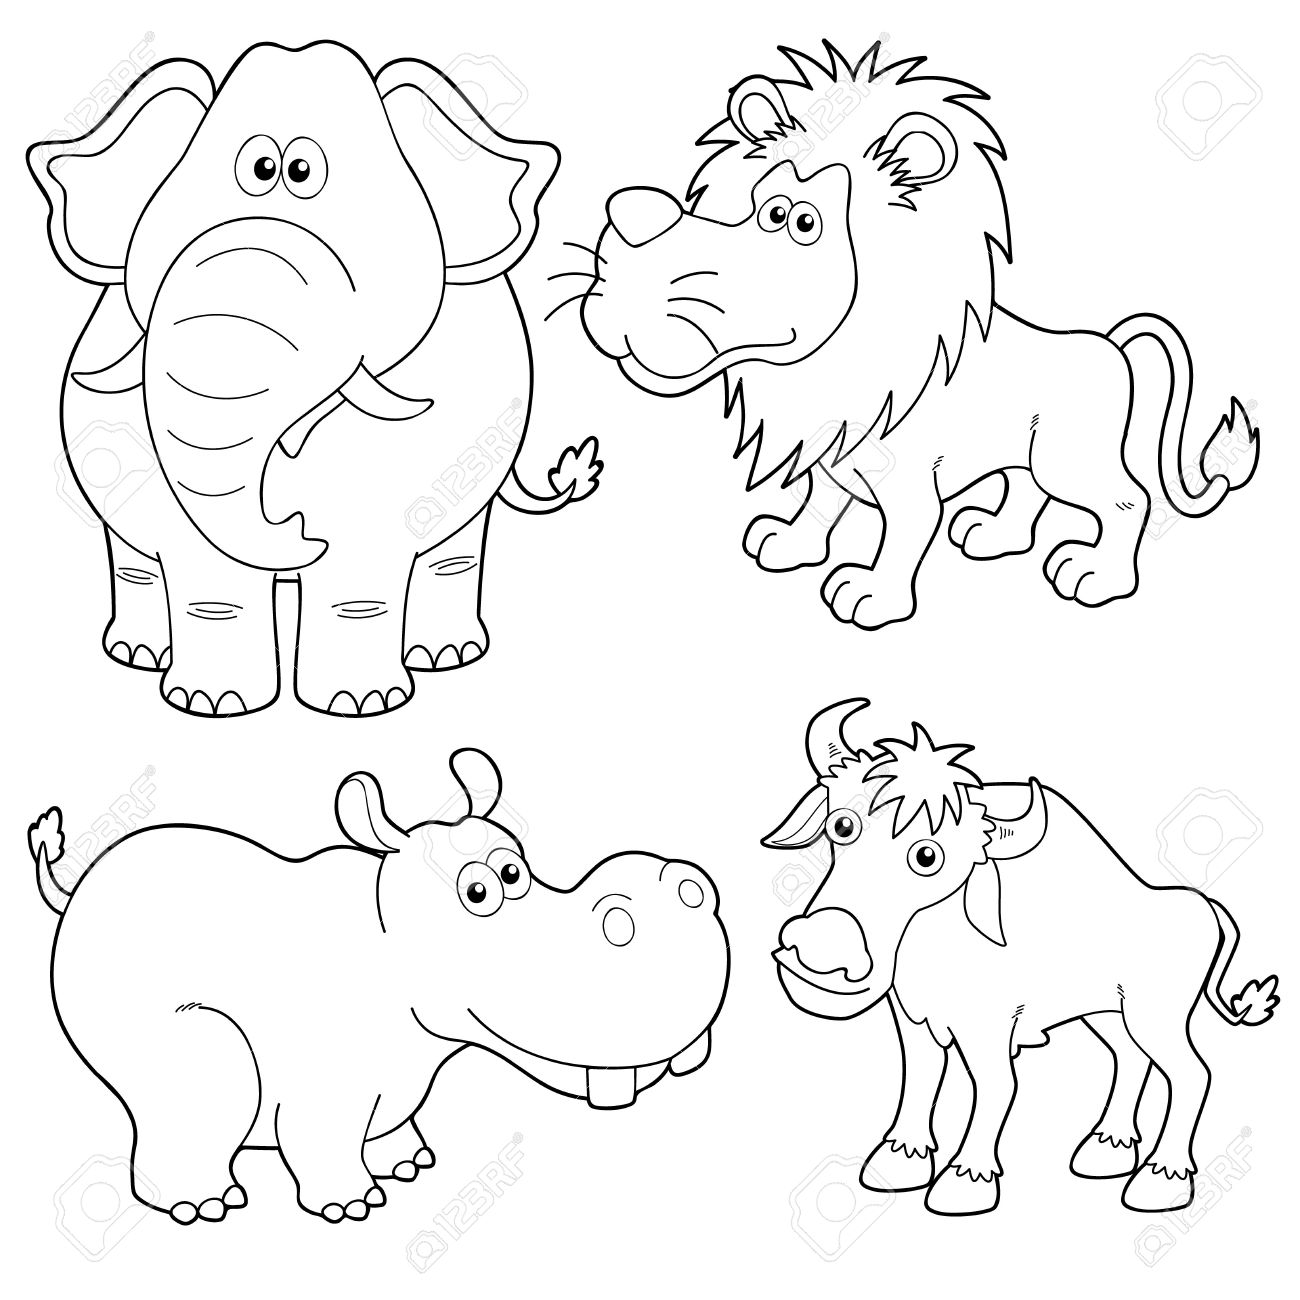 illustration of wild animals cartoons outline stock vector 16608665 - Animal Outlines